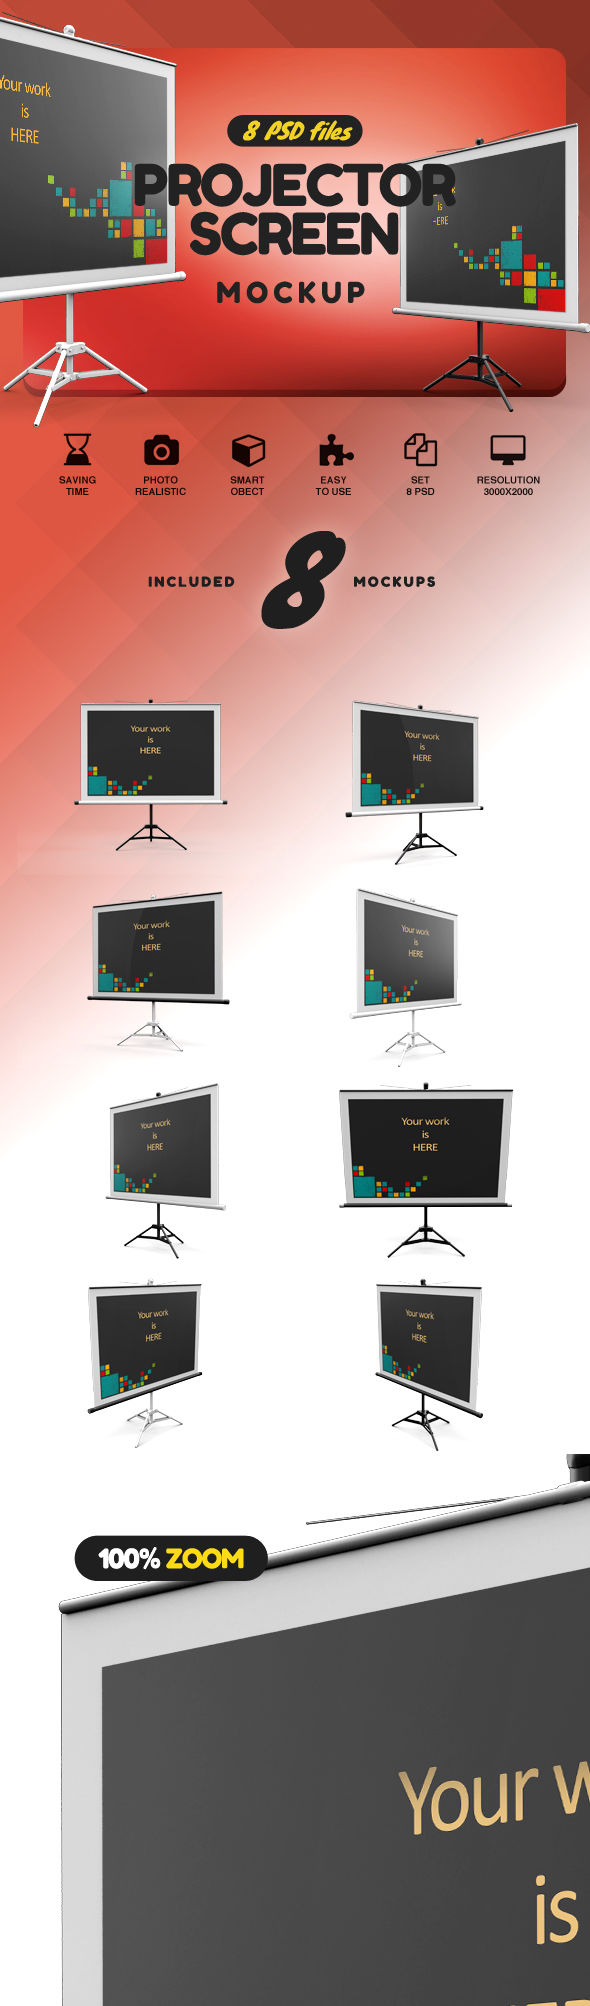 Download Billboard Mockup Free Download Psd Yellowimages